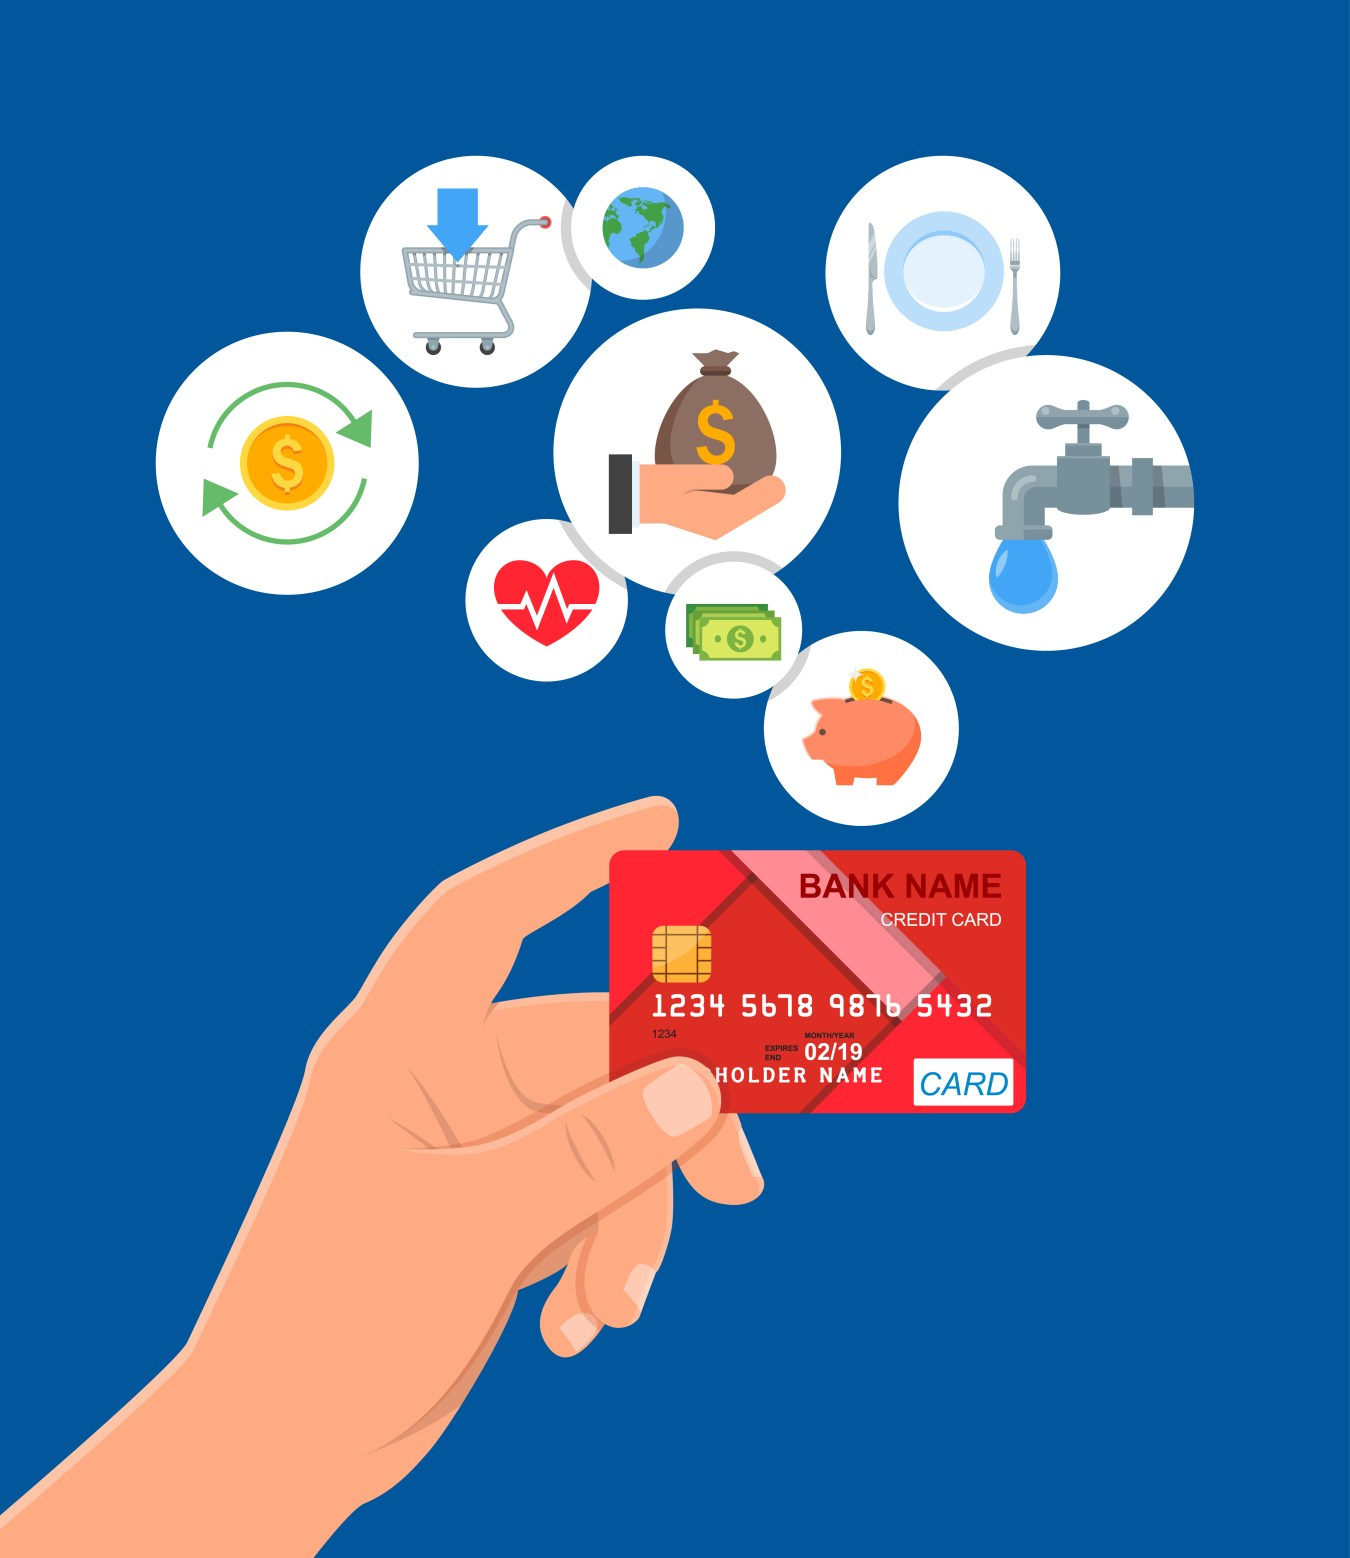 Credit Cards: A Useful Banking Tool